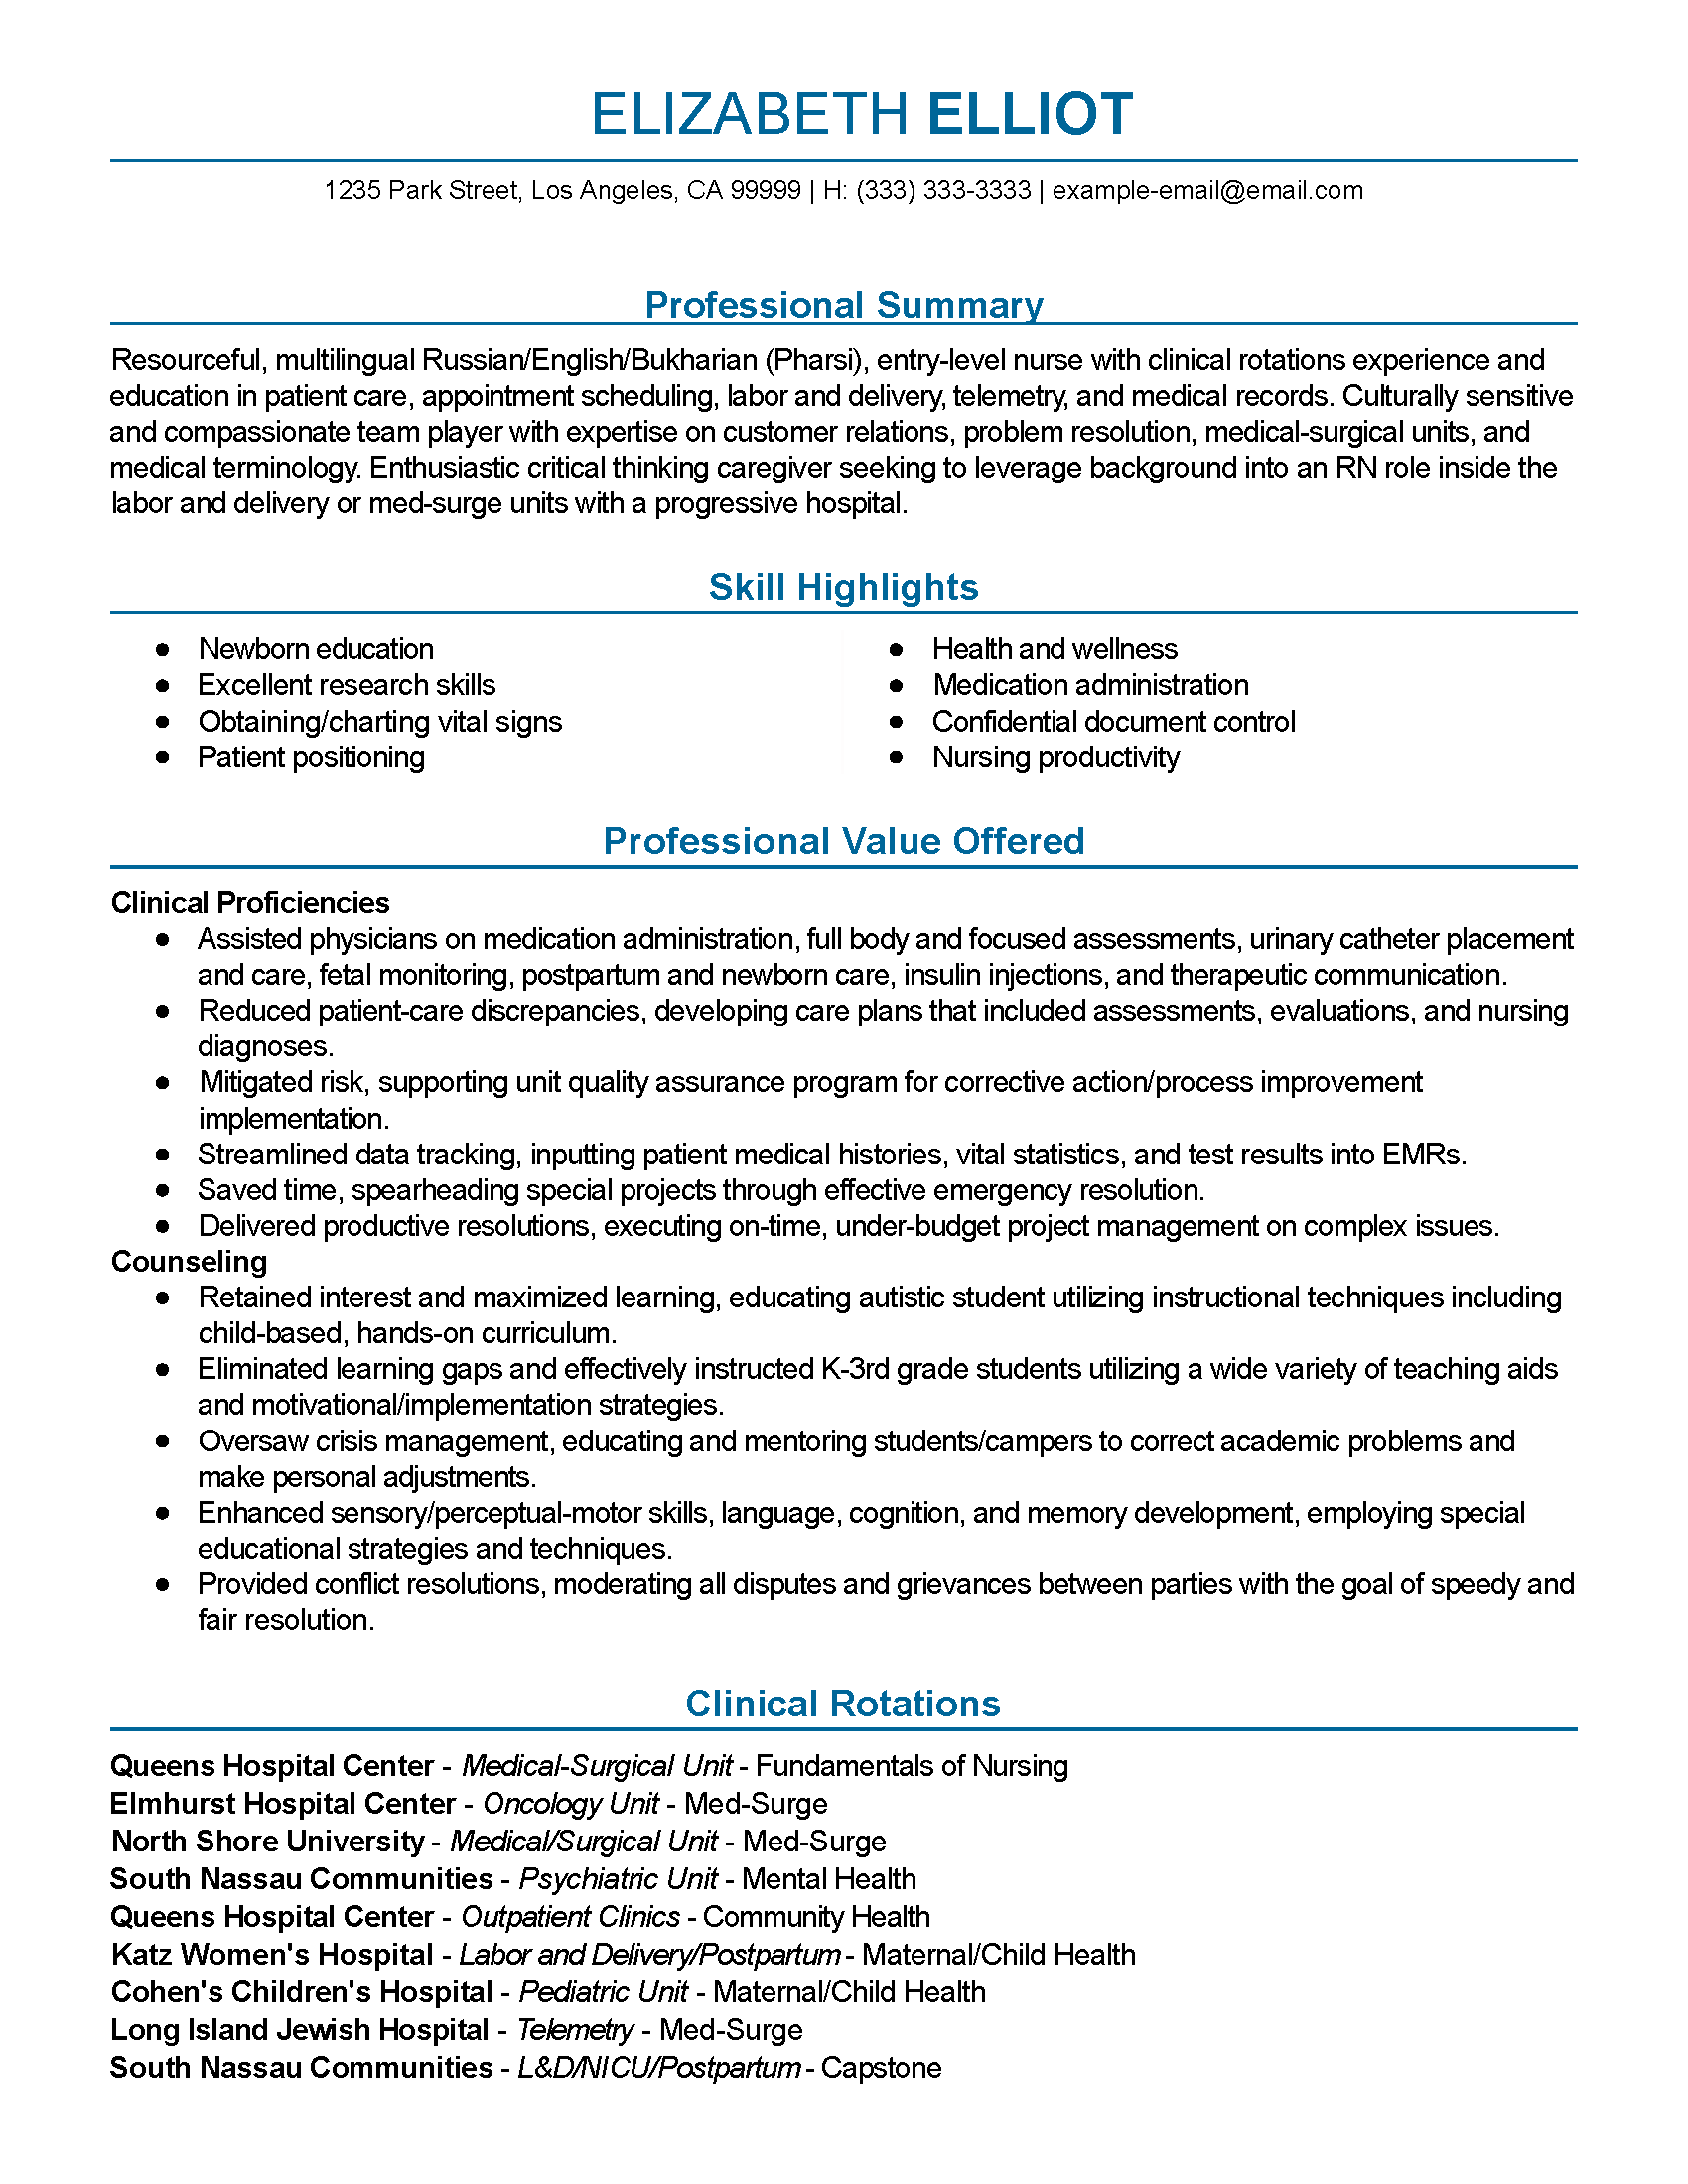 Los Angeles Example Email Nursing Student Resume Sample Entry